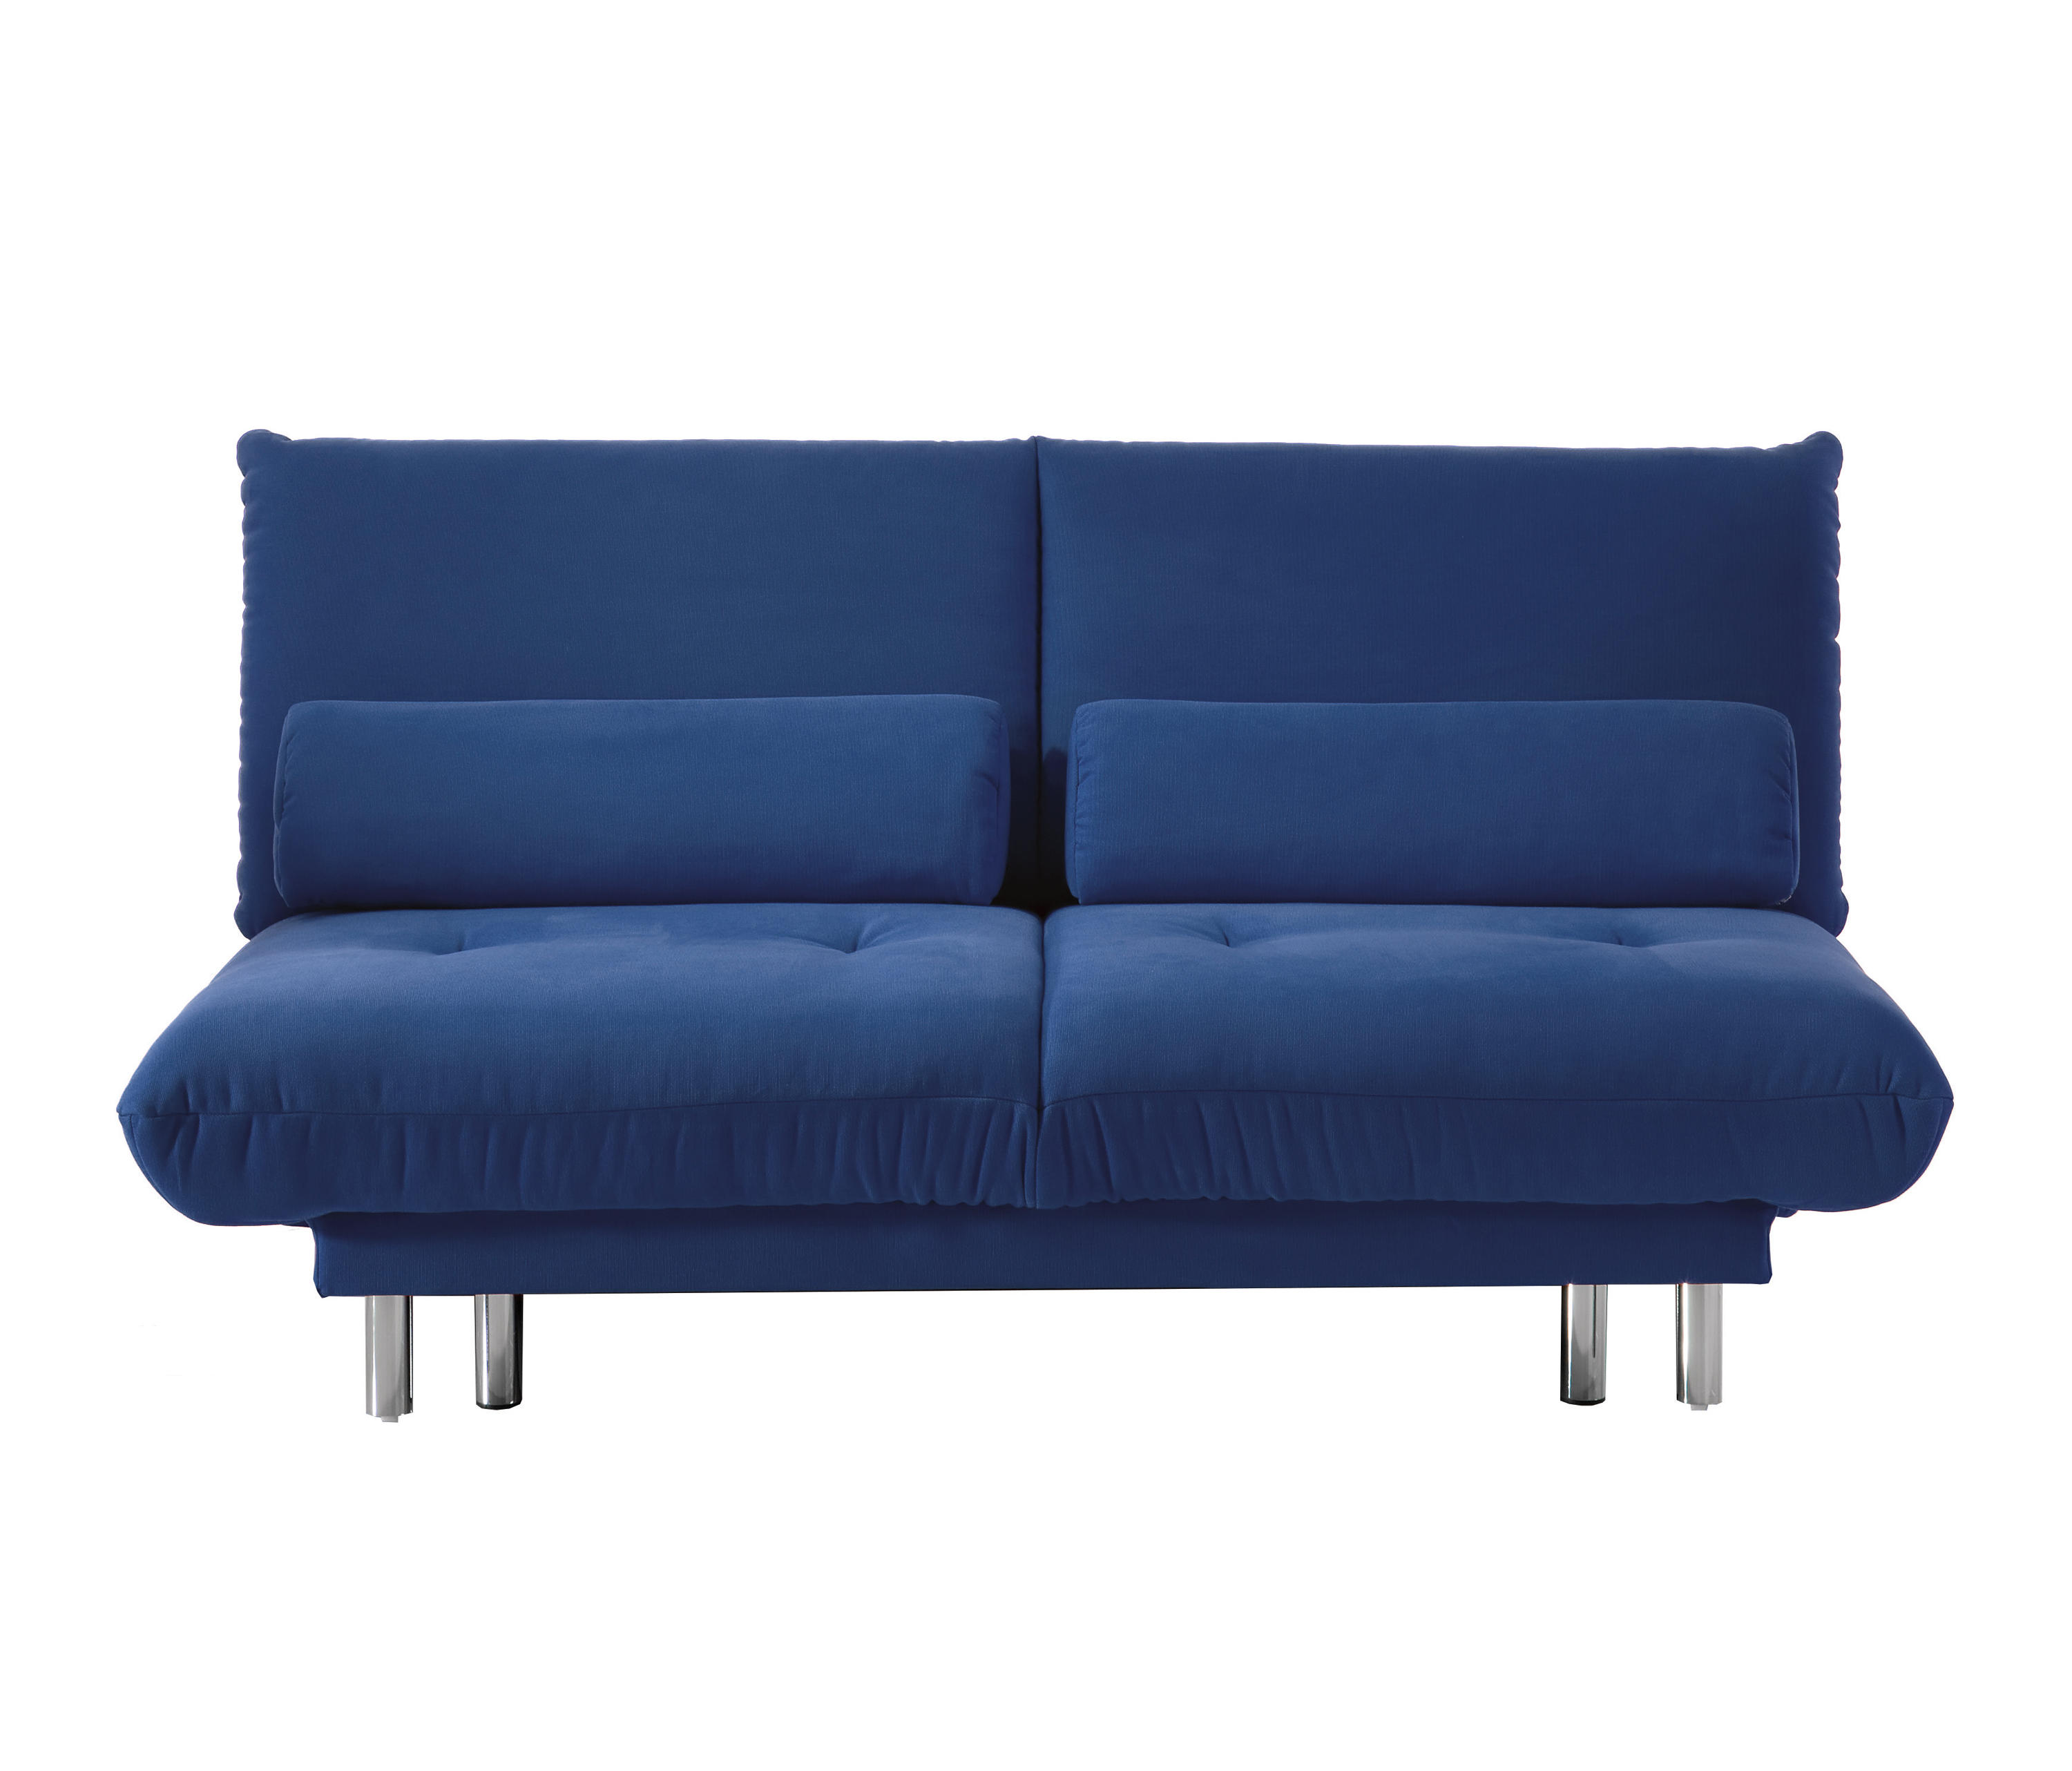 Bettsofa Outlet Quint Bed Sofa Sofas From Brühl Architonic